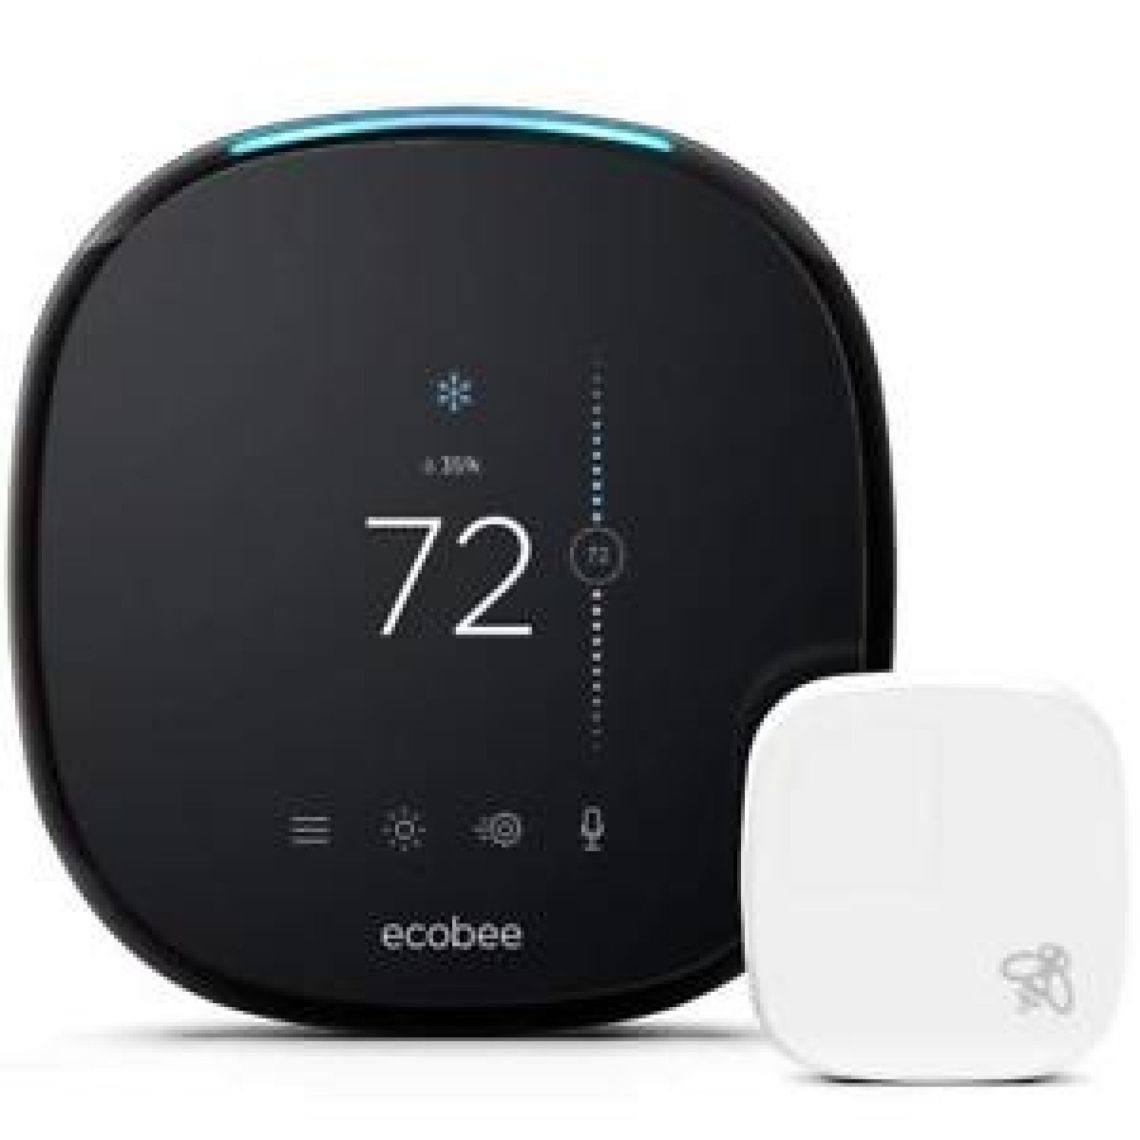 ecobee4 Voice-Enabled Smart Thermostat with Built-In Alexa - Black | eBay